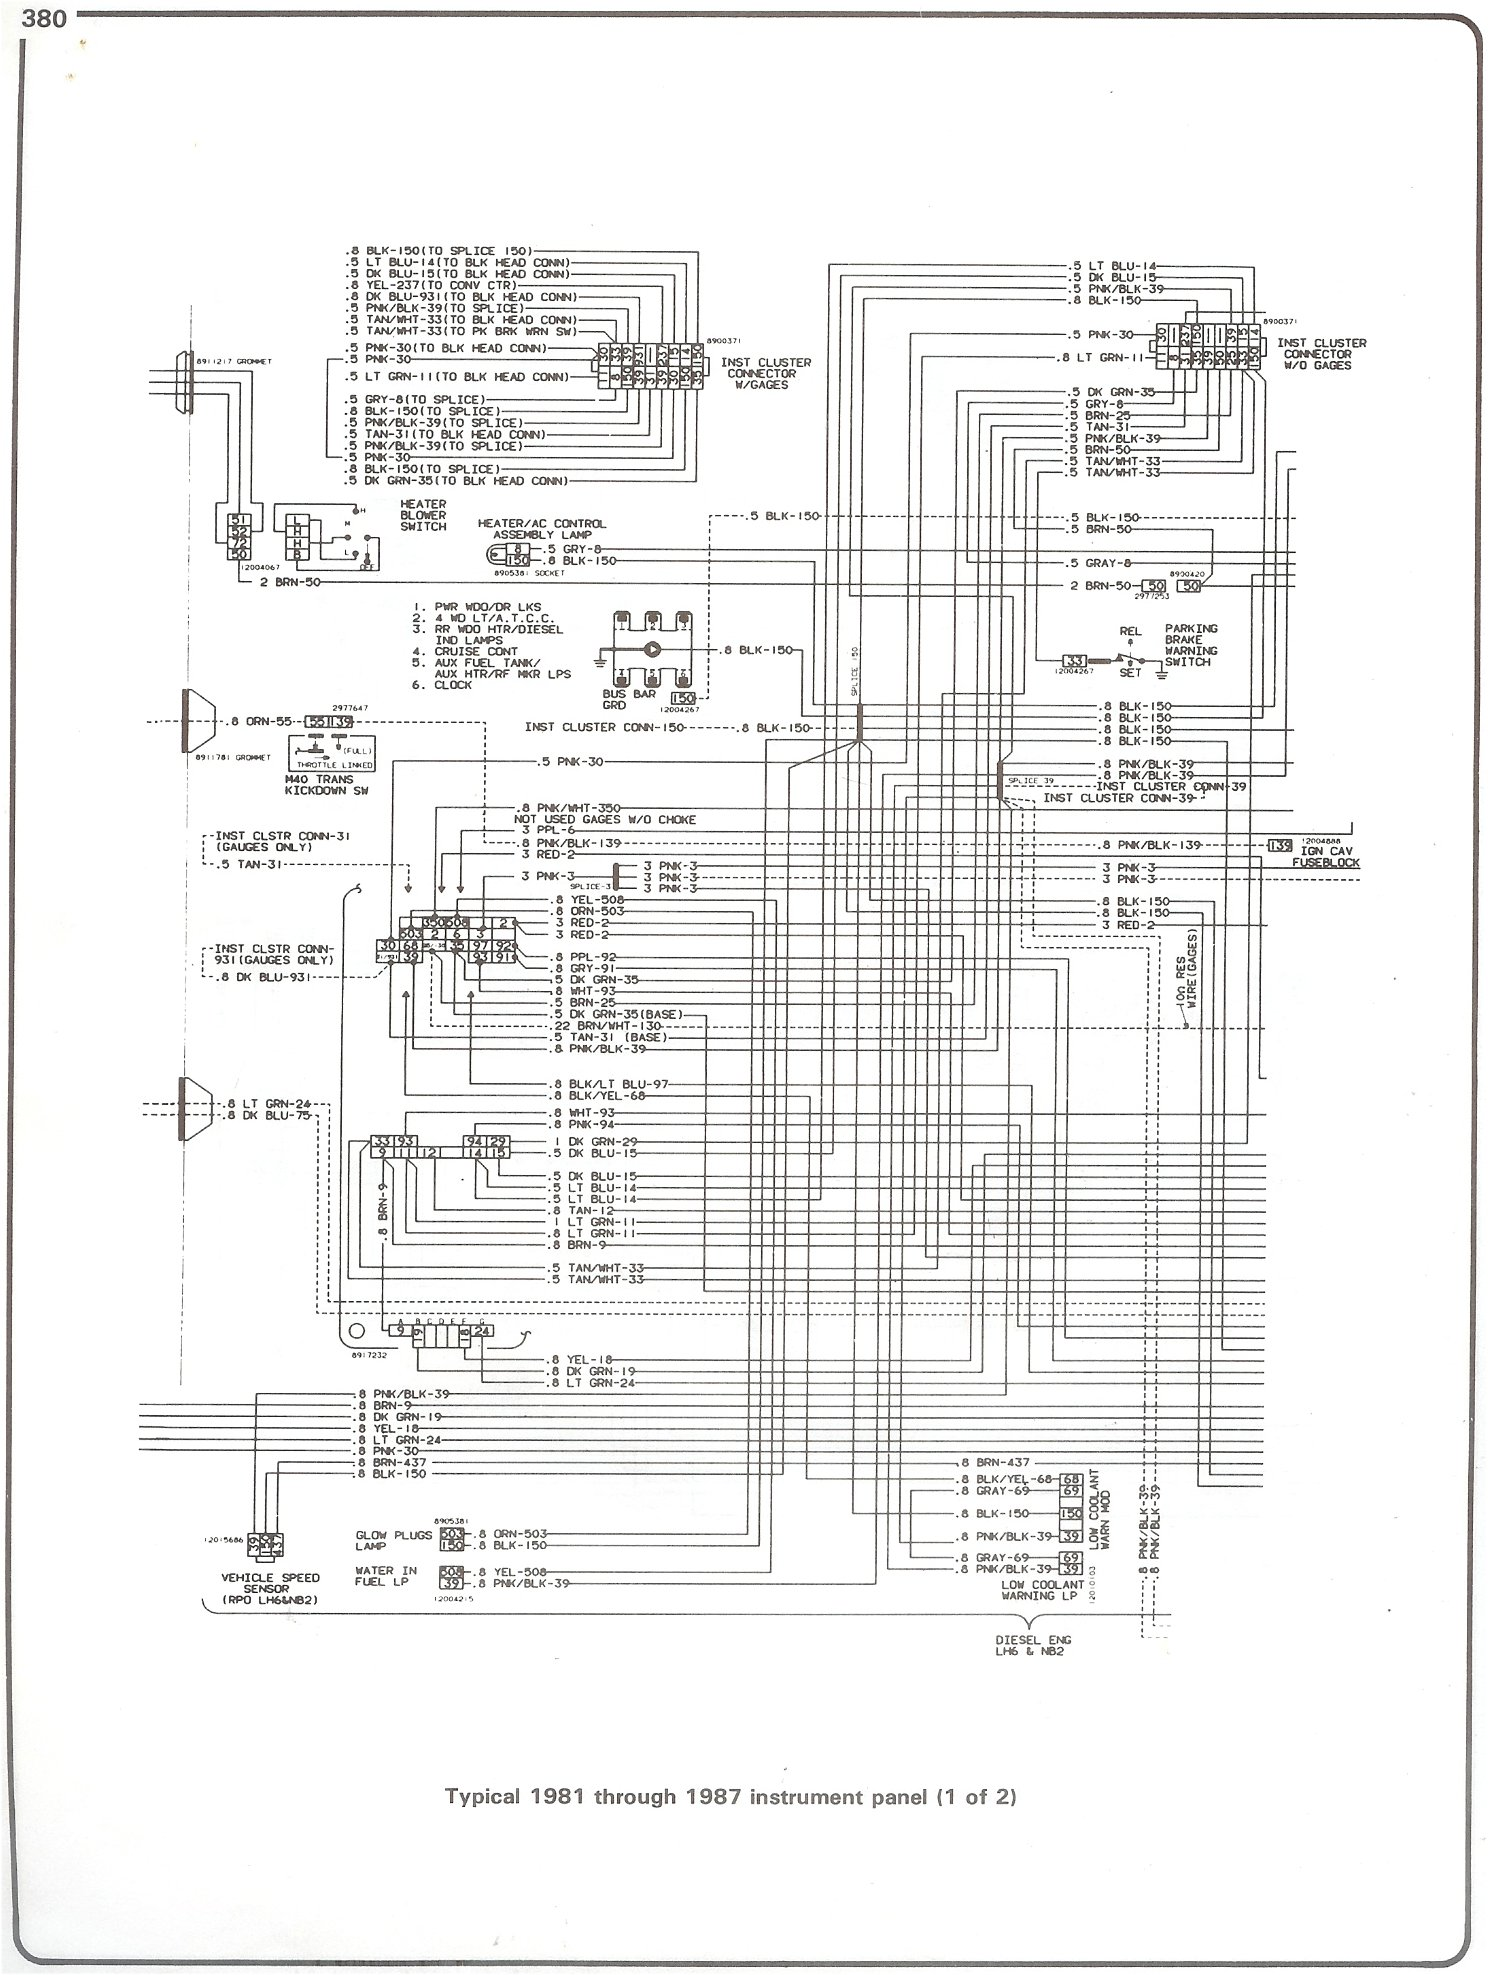 1990 Chevy C1500 Wiring Harness Diagram Will Be A Thing Silverado Schematic Complete 73 87 Diagrams 1500 Engine K1500